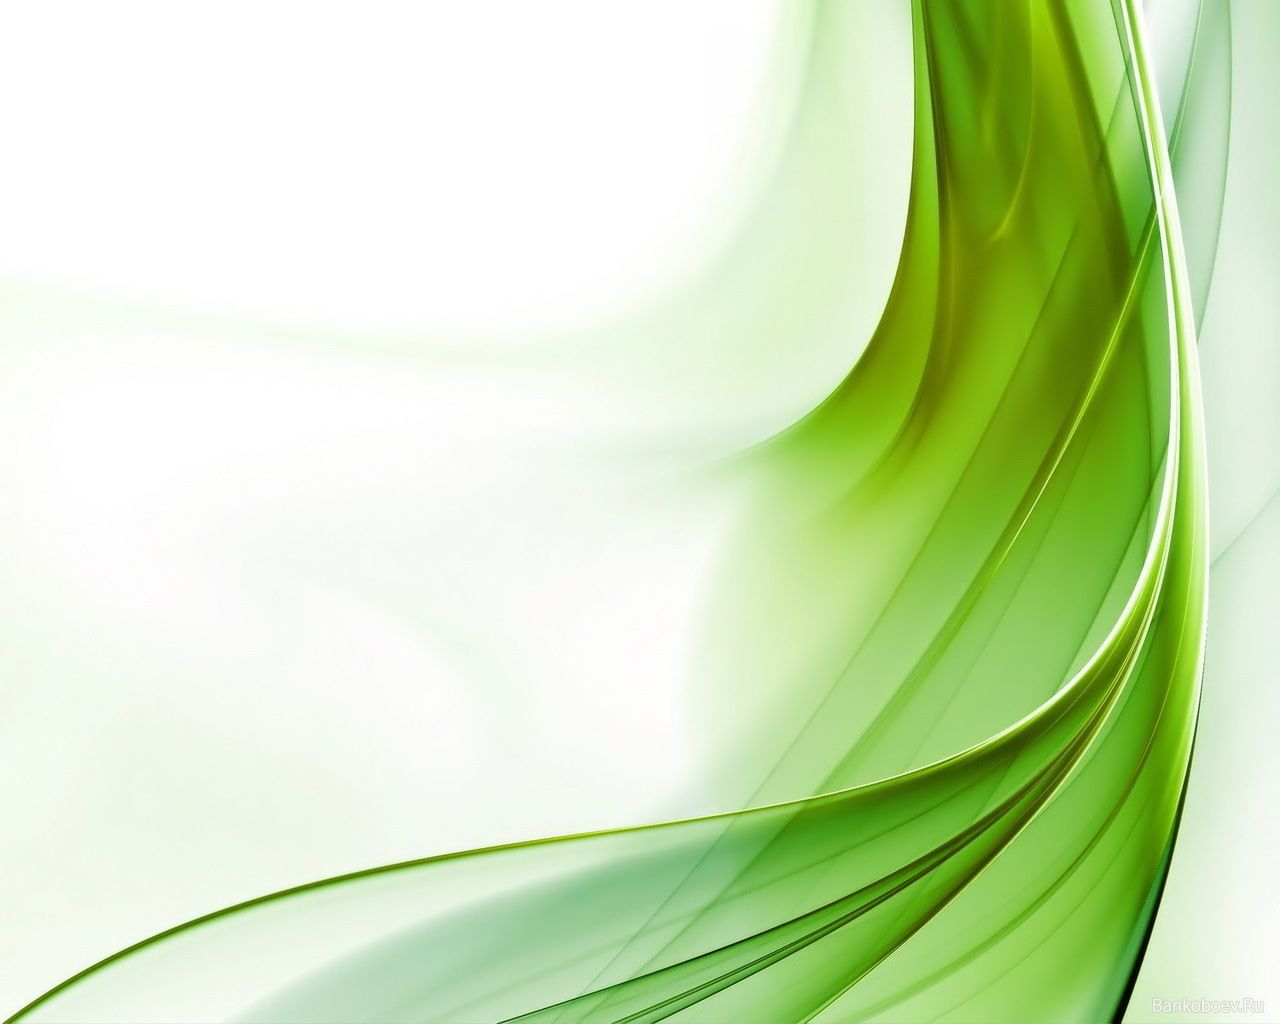 Green wave abstract backgrounds for powerpoint templates | Recipes ...